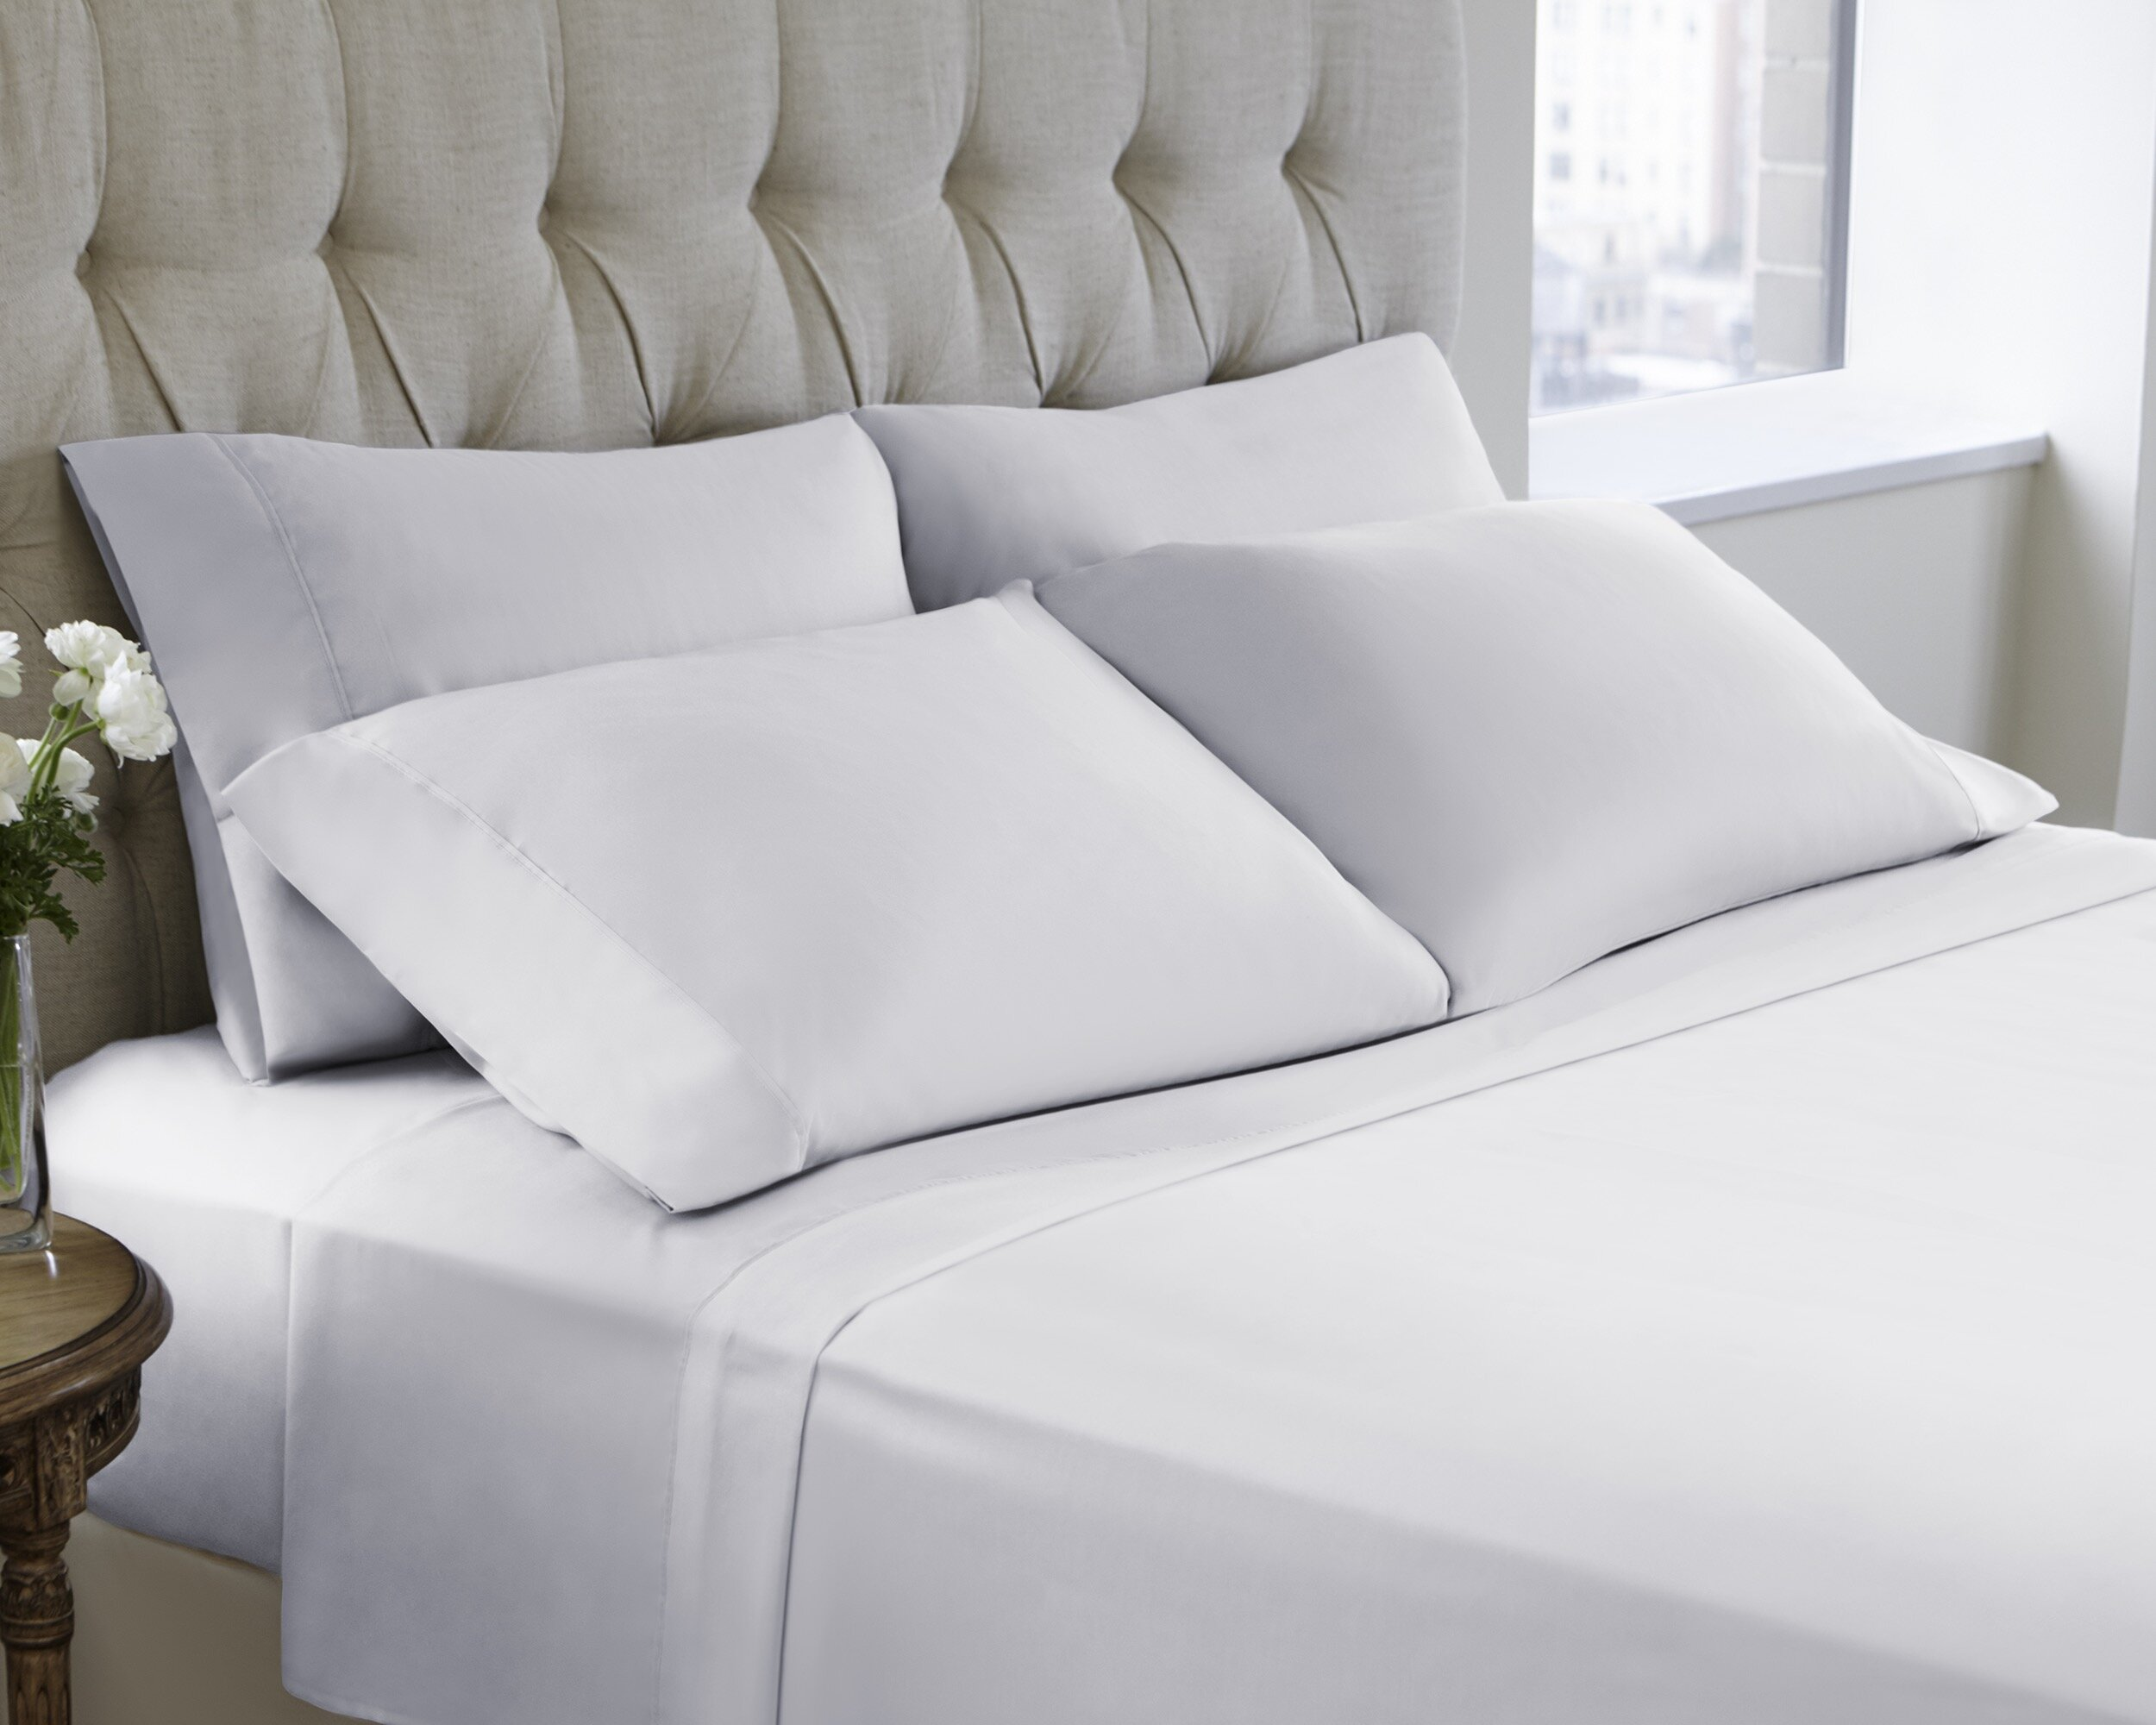 Make hassle-free perfect bedding with the fitted sheet